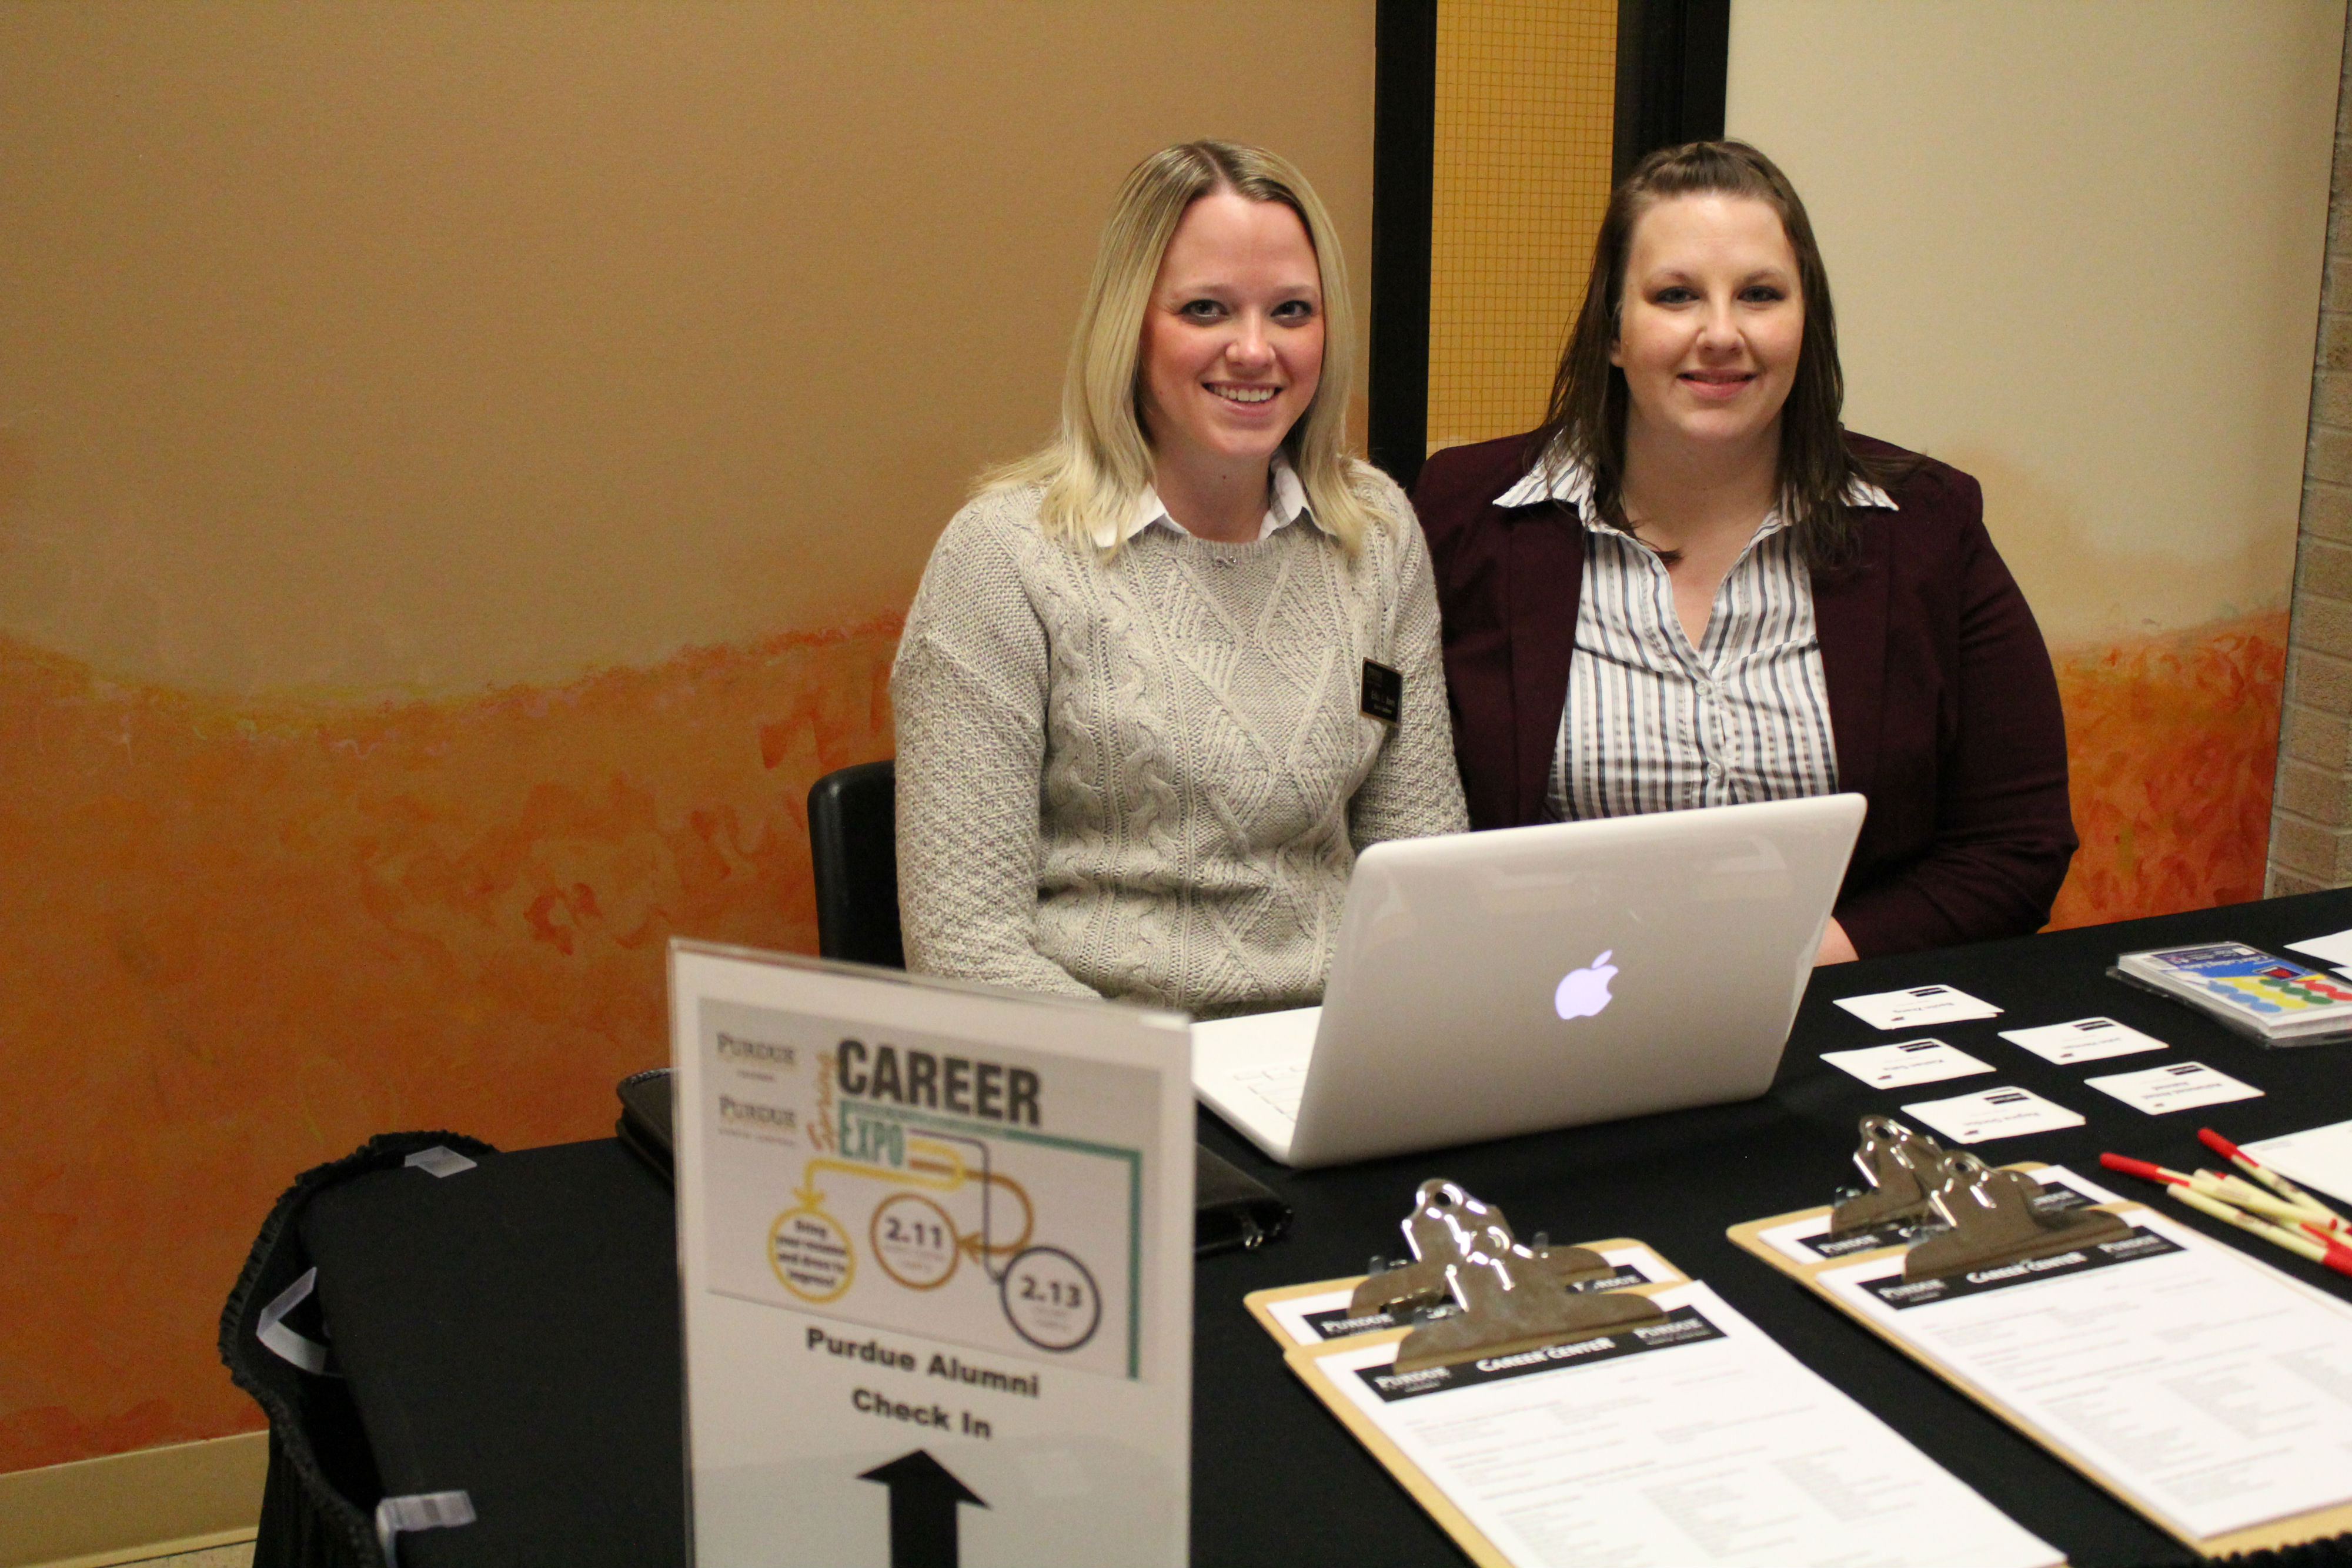 Purdue University North Central Hosts Spring Career Fair Expo